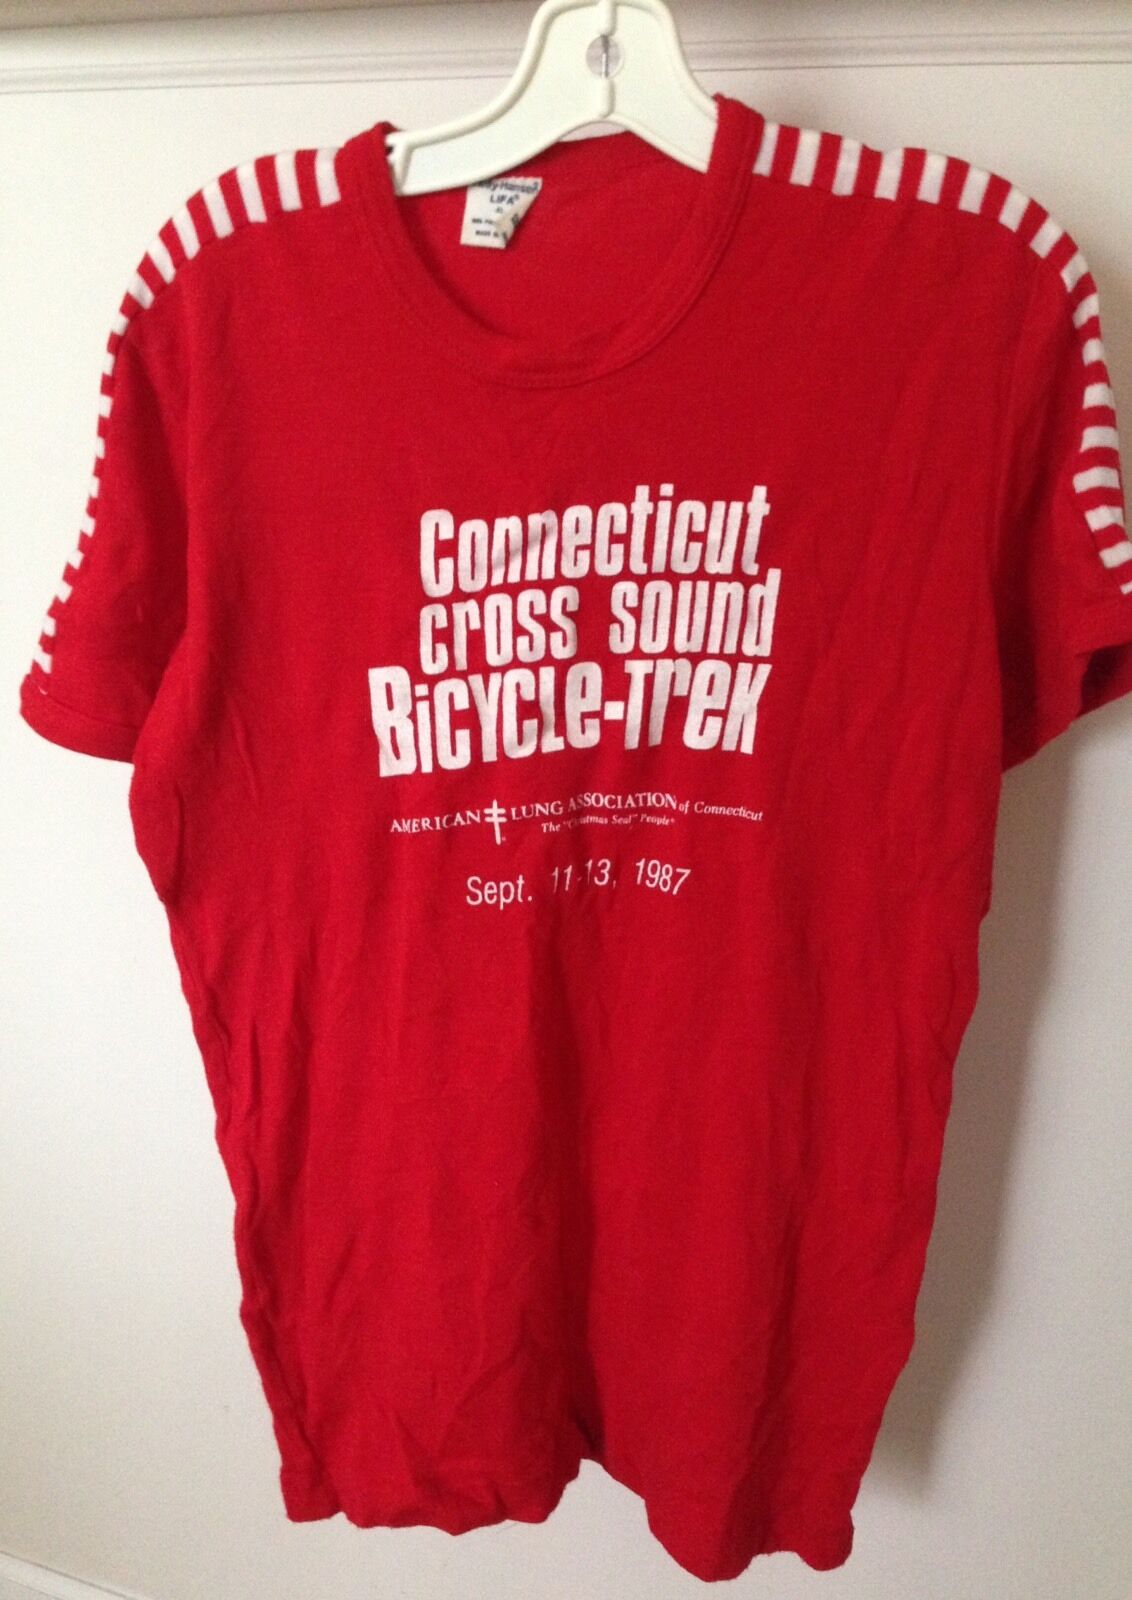 Vintage Sound Connecticut Cross Sound Vintage Bicycle Trek Helly Hansen Polypropylene XL Shirt 53258a